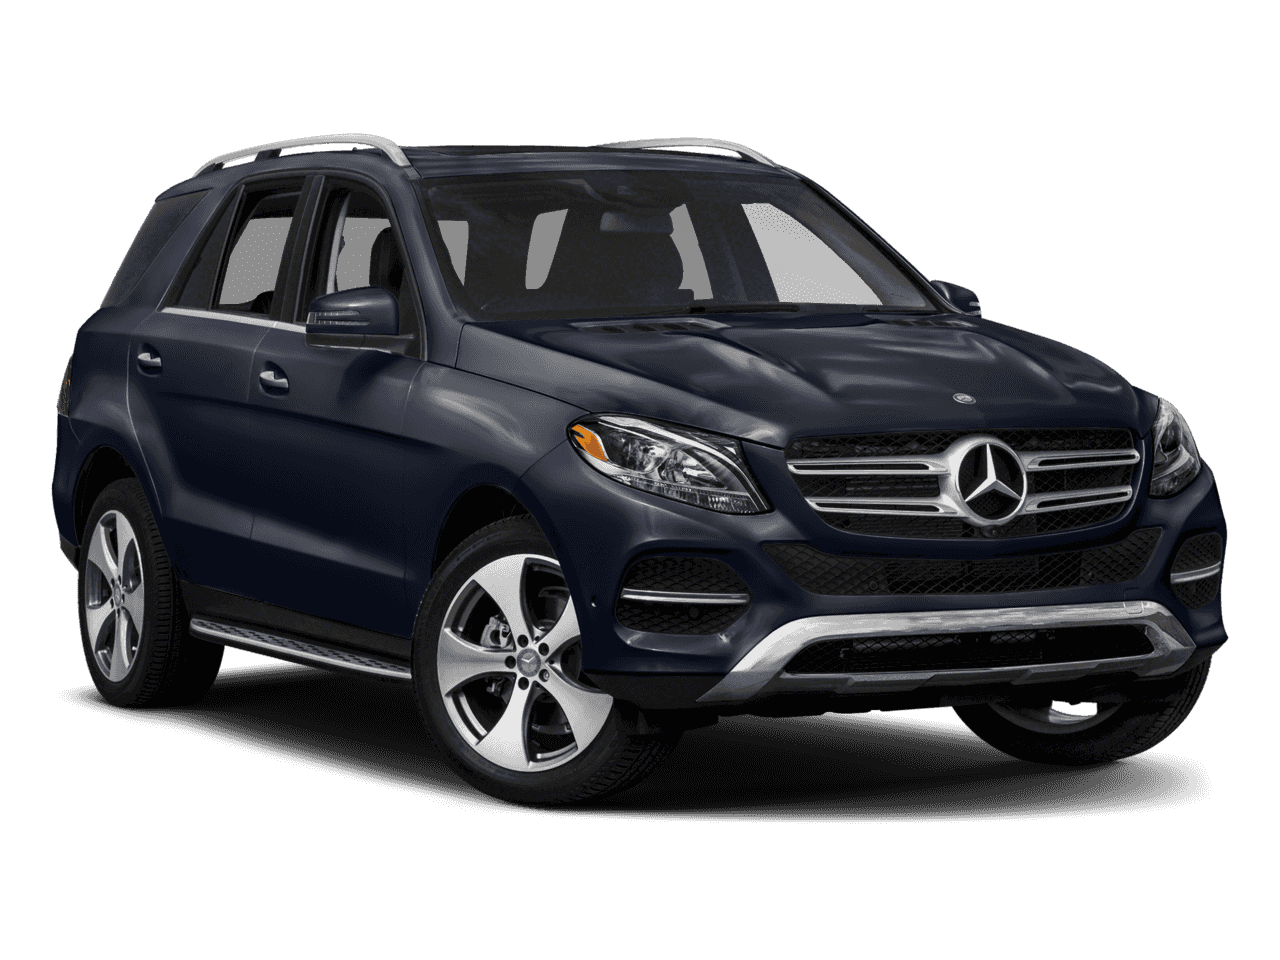 19 New Mercedes Benz Gle Suvs For Sale Fj Motorcars Newport Beach